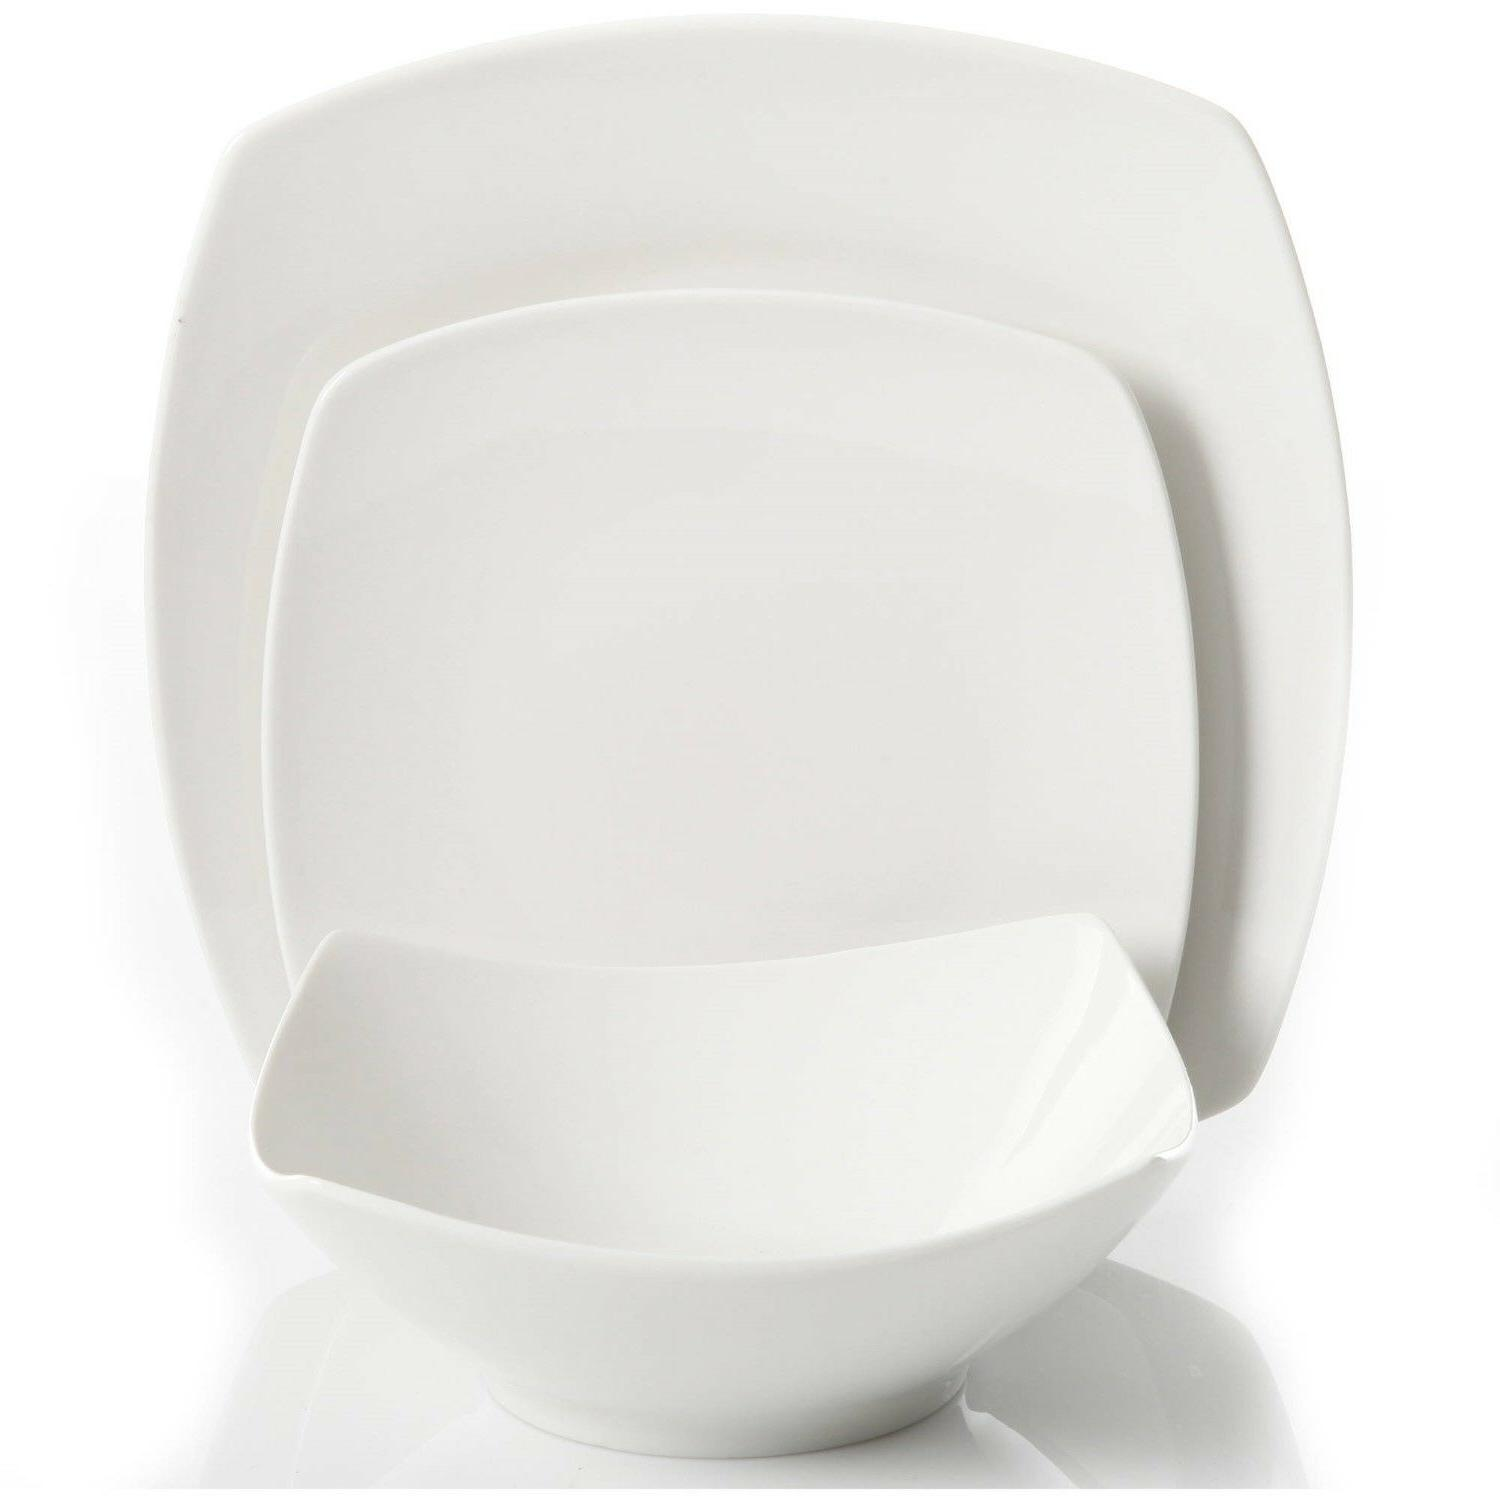 12-Piece Square Set Dinner Plates Ceramic White Dishes